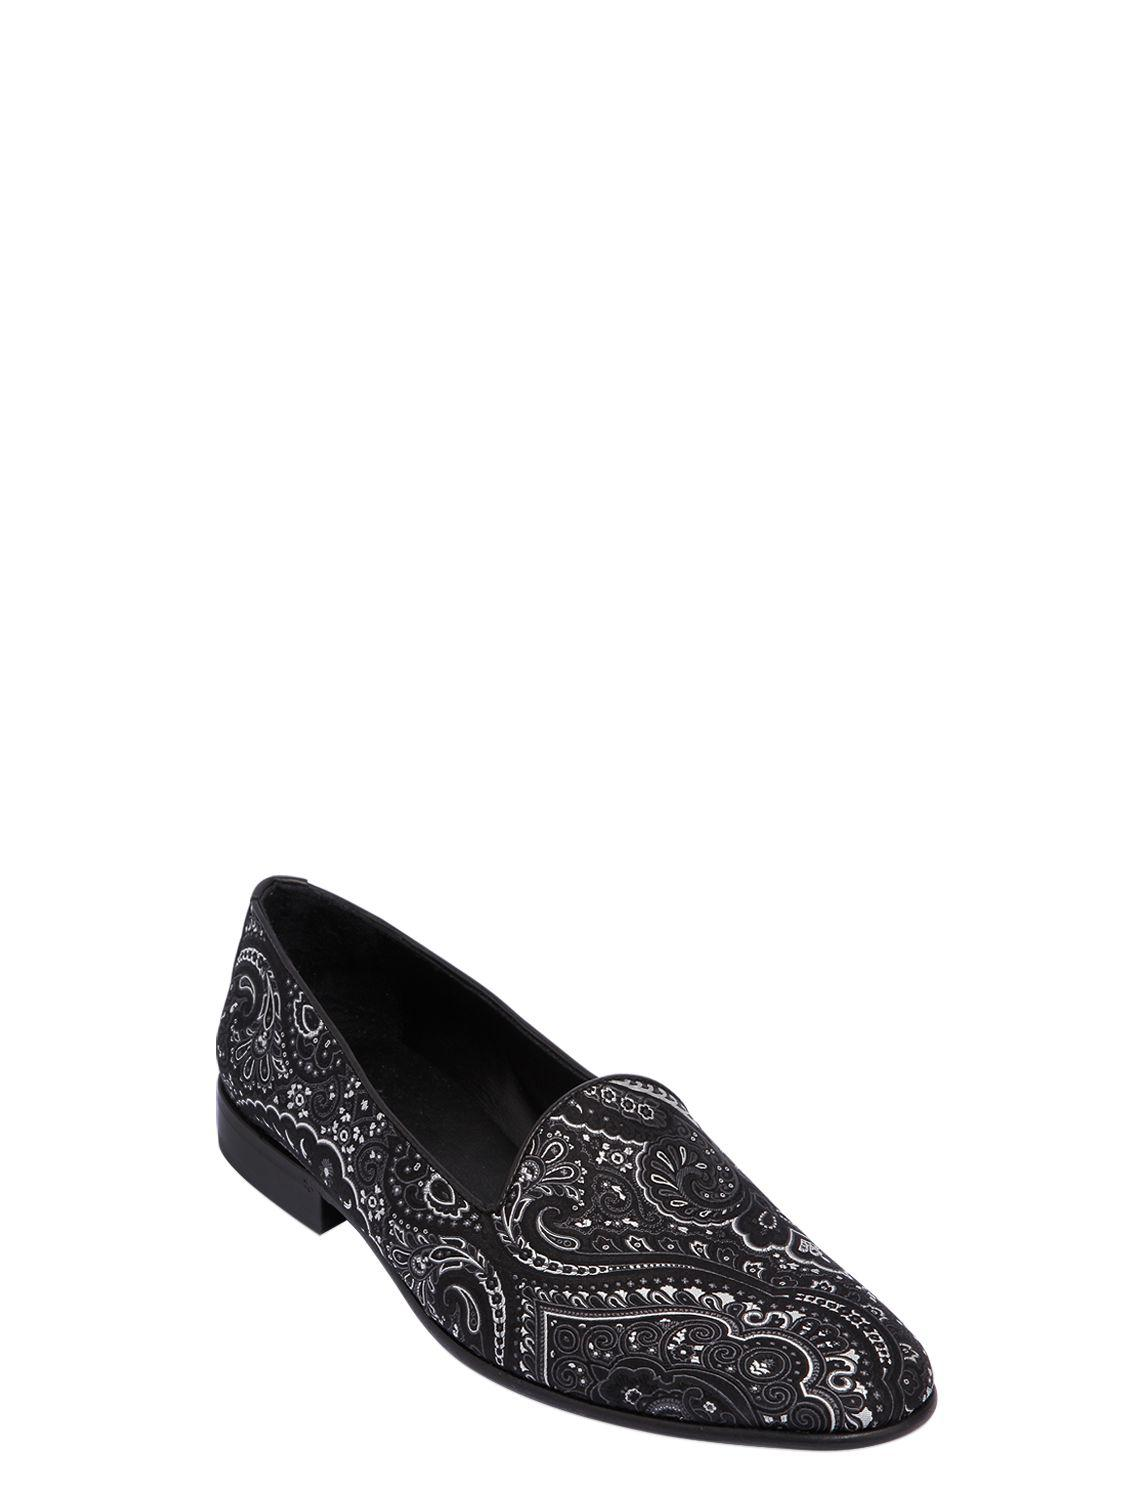 EtroPAISLEY SILK JACQUARD LOAFERS